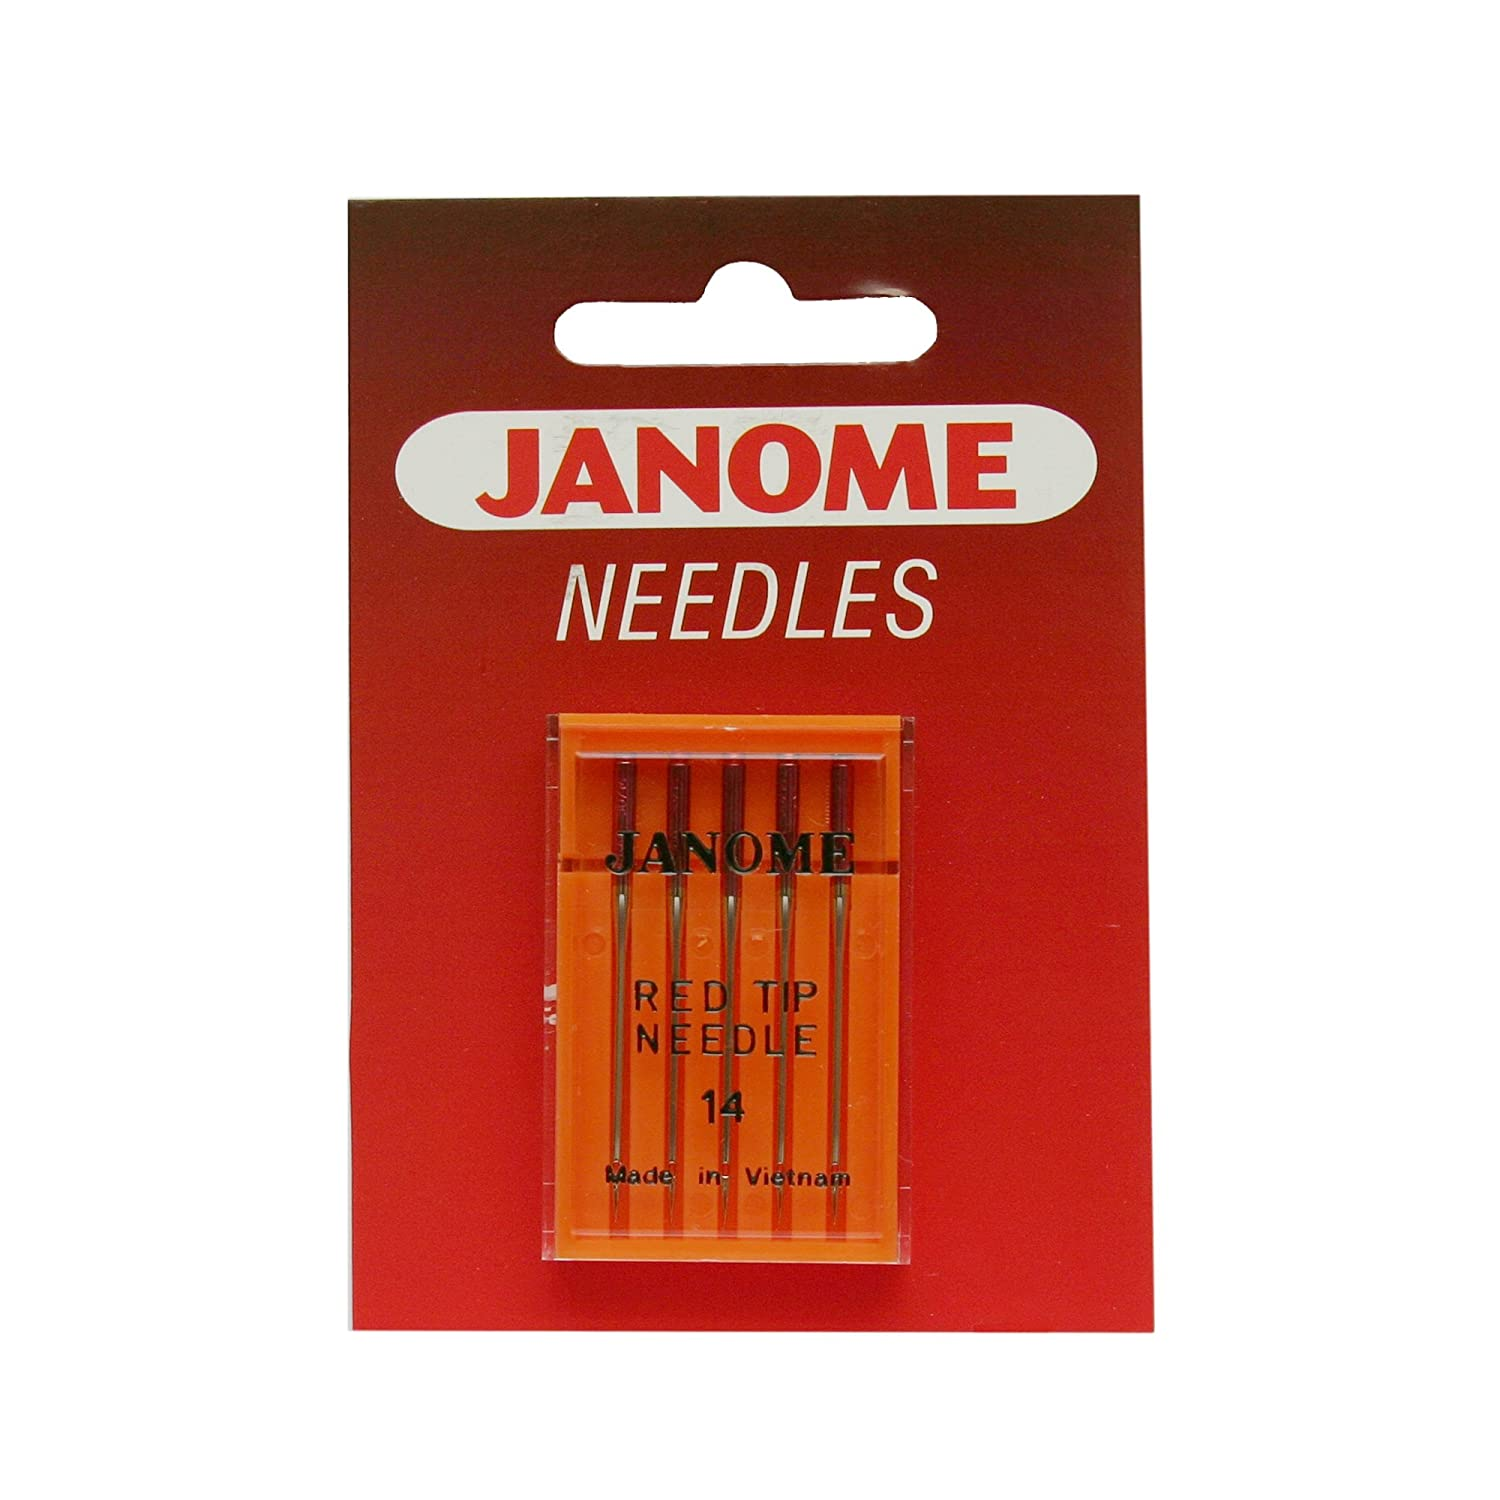 Janome Red Tip 5 Needle Pack Size 14 FBA_990314000